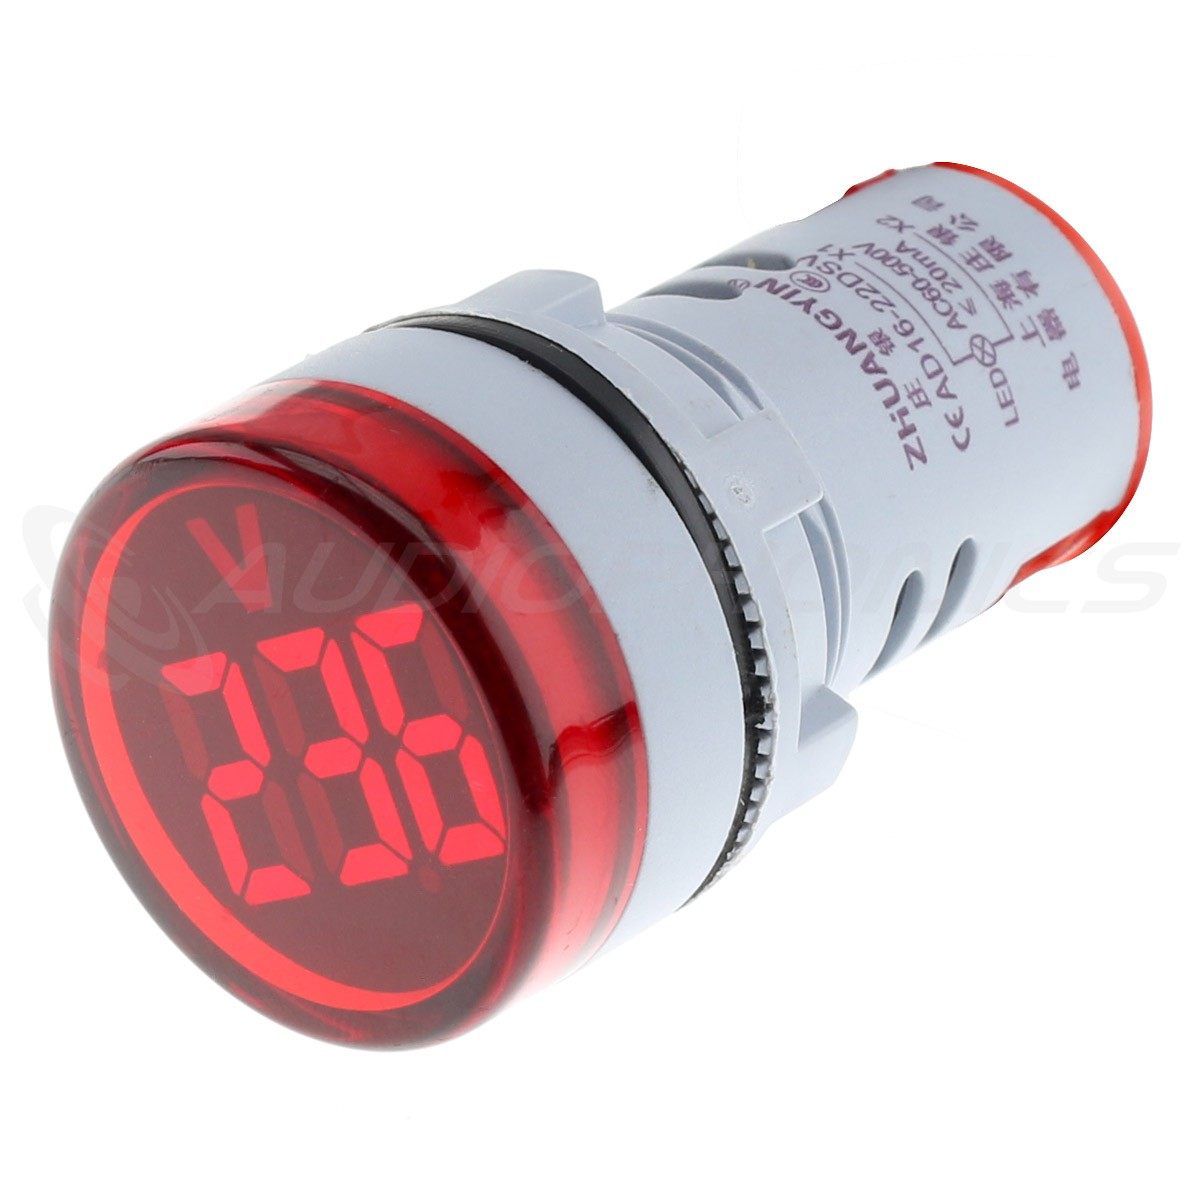 Voltage Display Voltmeter with Red LED 60-500VAC Ø22mm